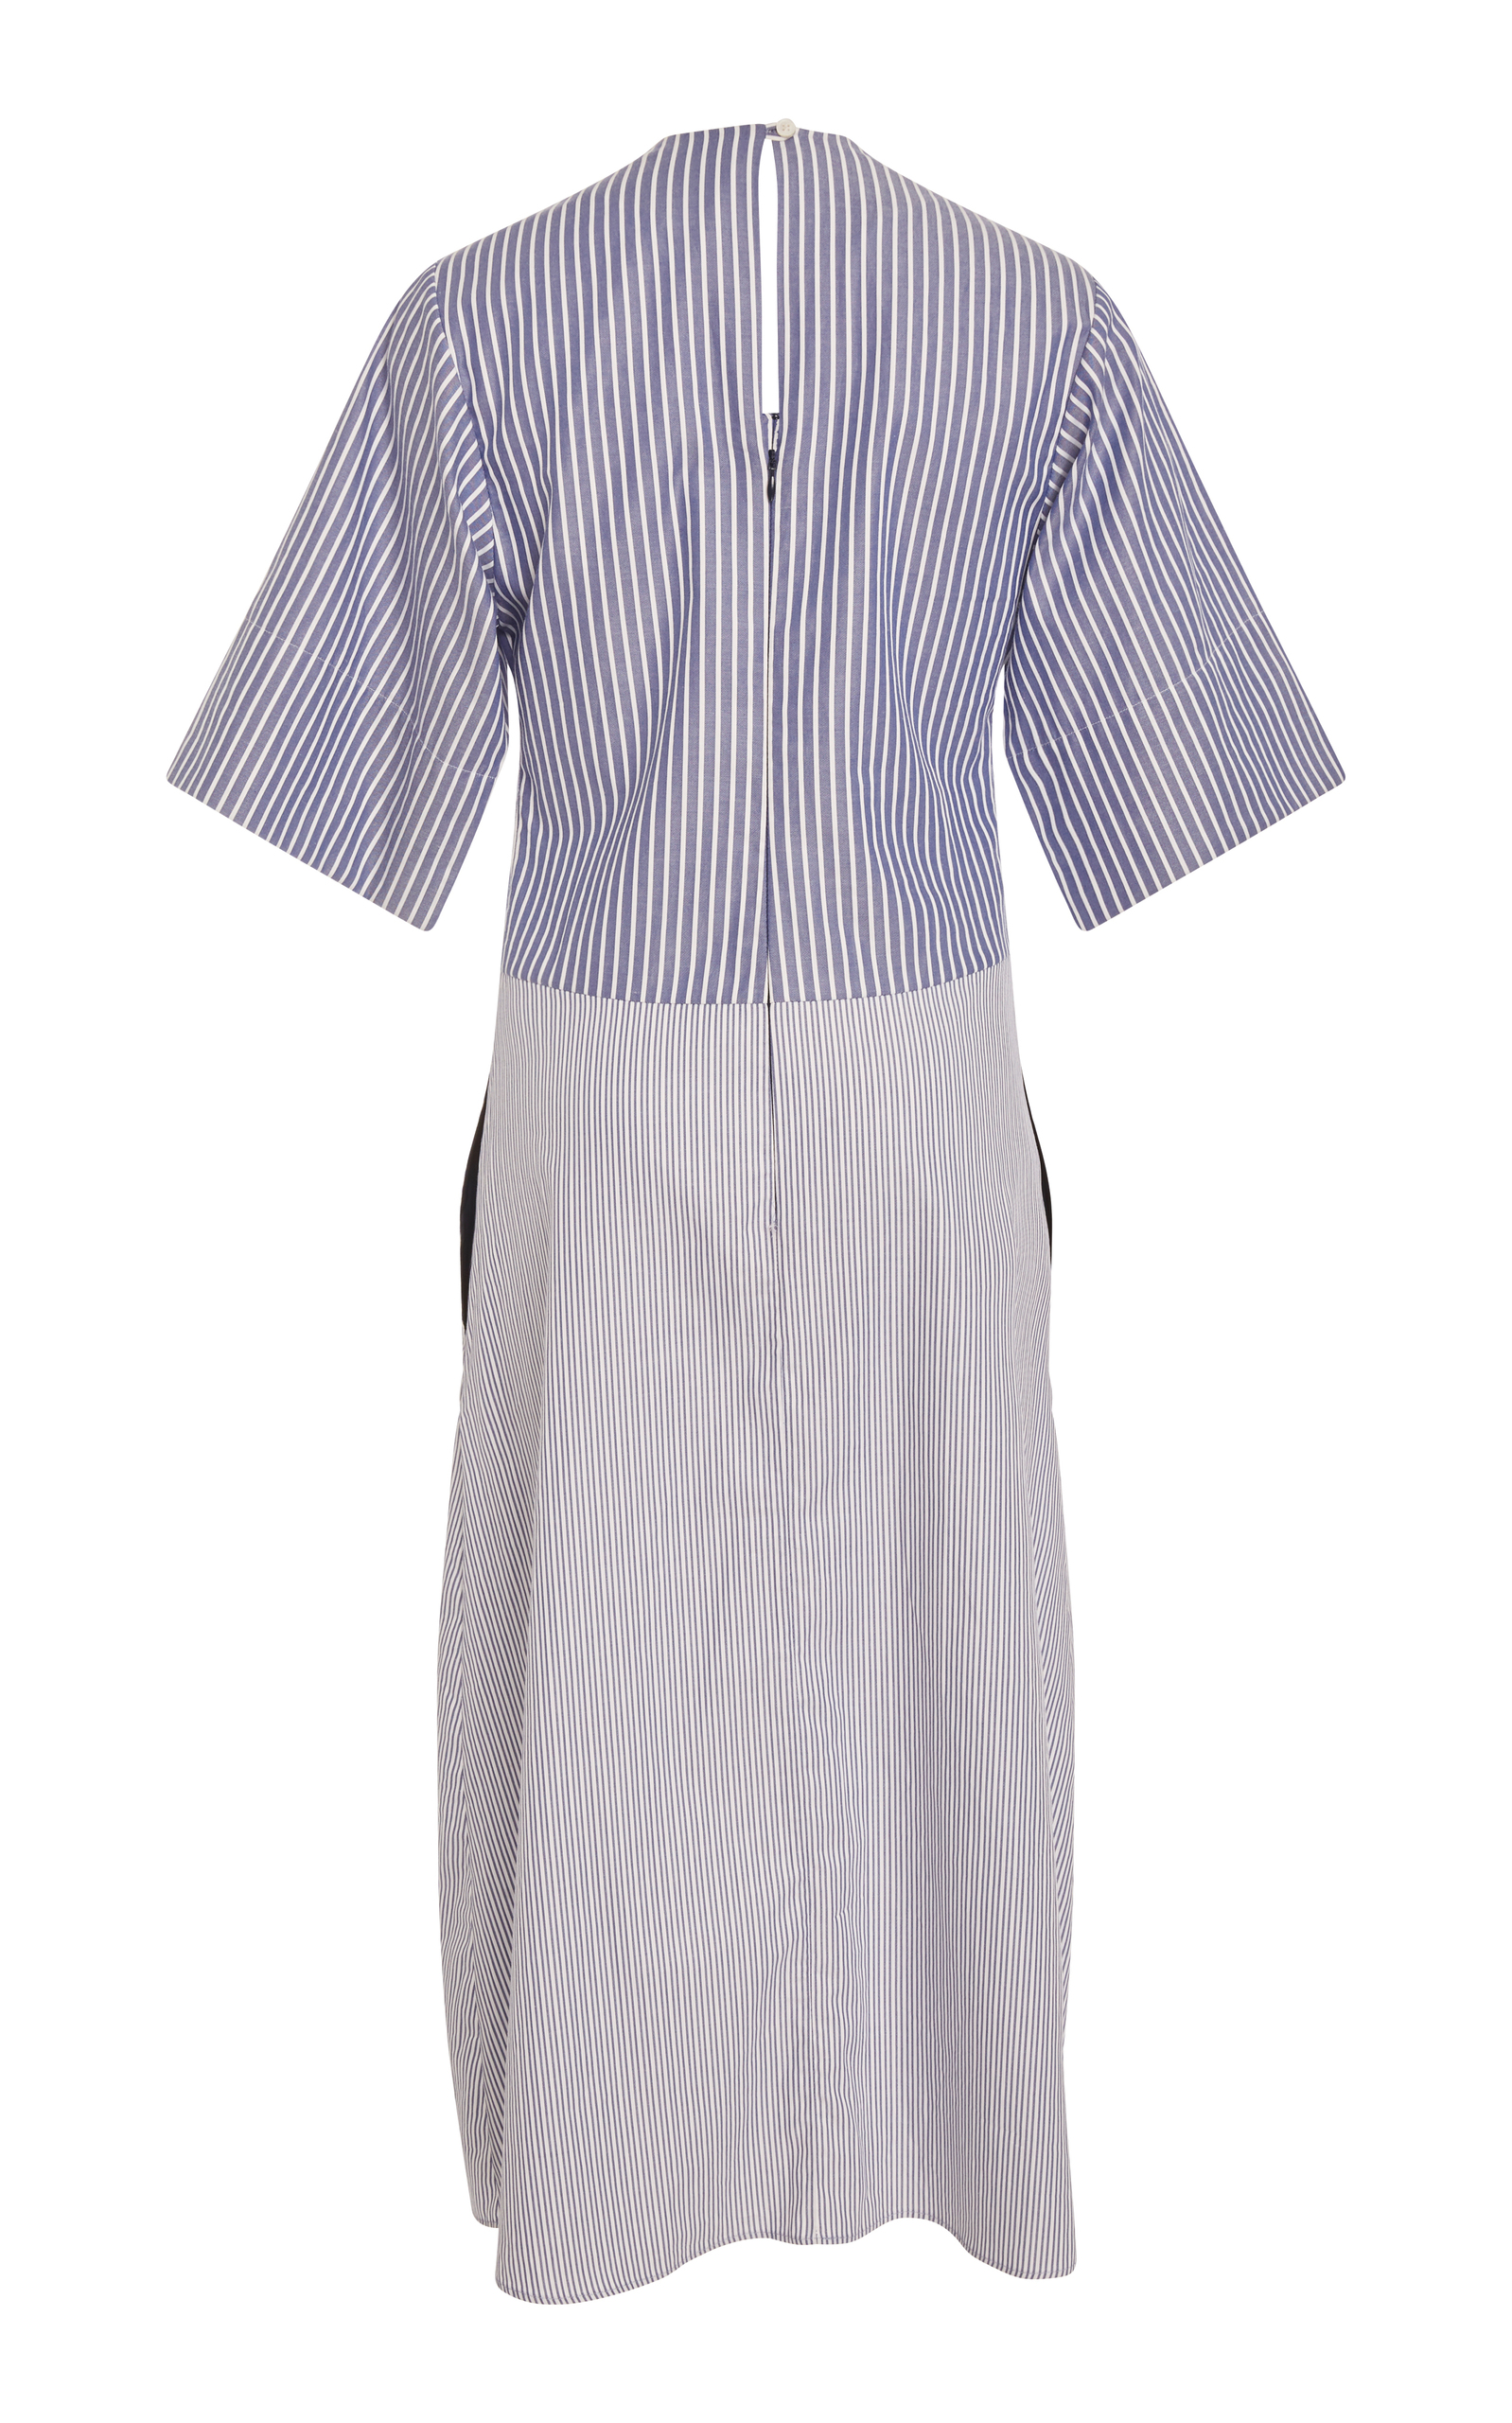 https://assets10.modaoperandi.com/images/products/608646/200337/f/large_carven-stripe-bow-embellished-cotton-dress.jpg?_v=1525377841